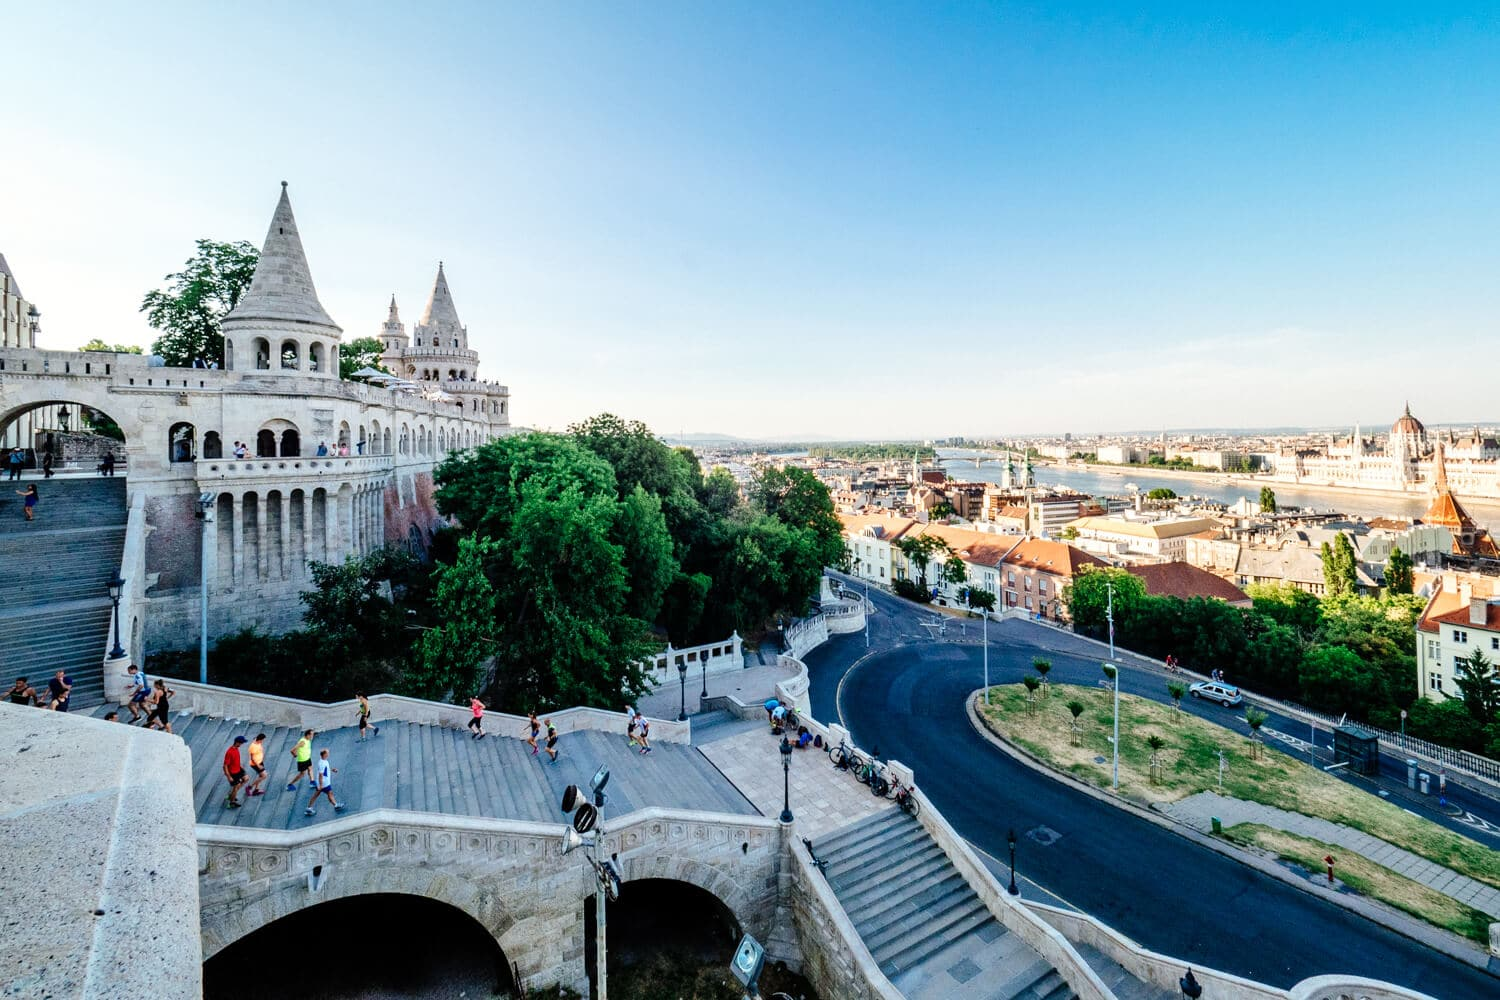 Fisherman's Bastion - Buda